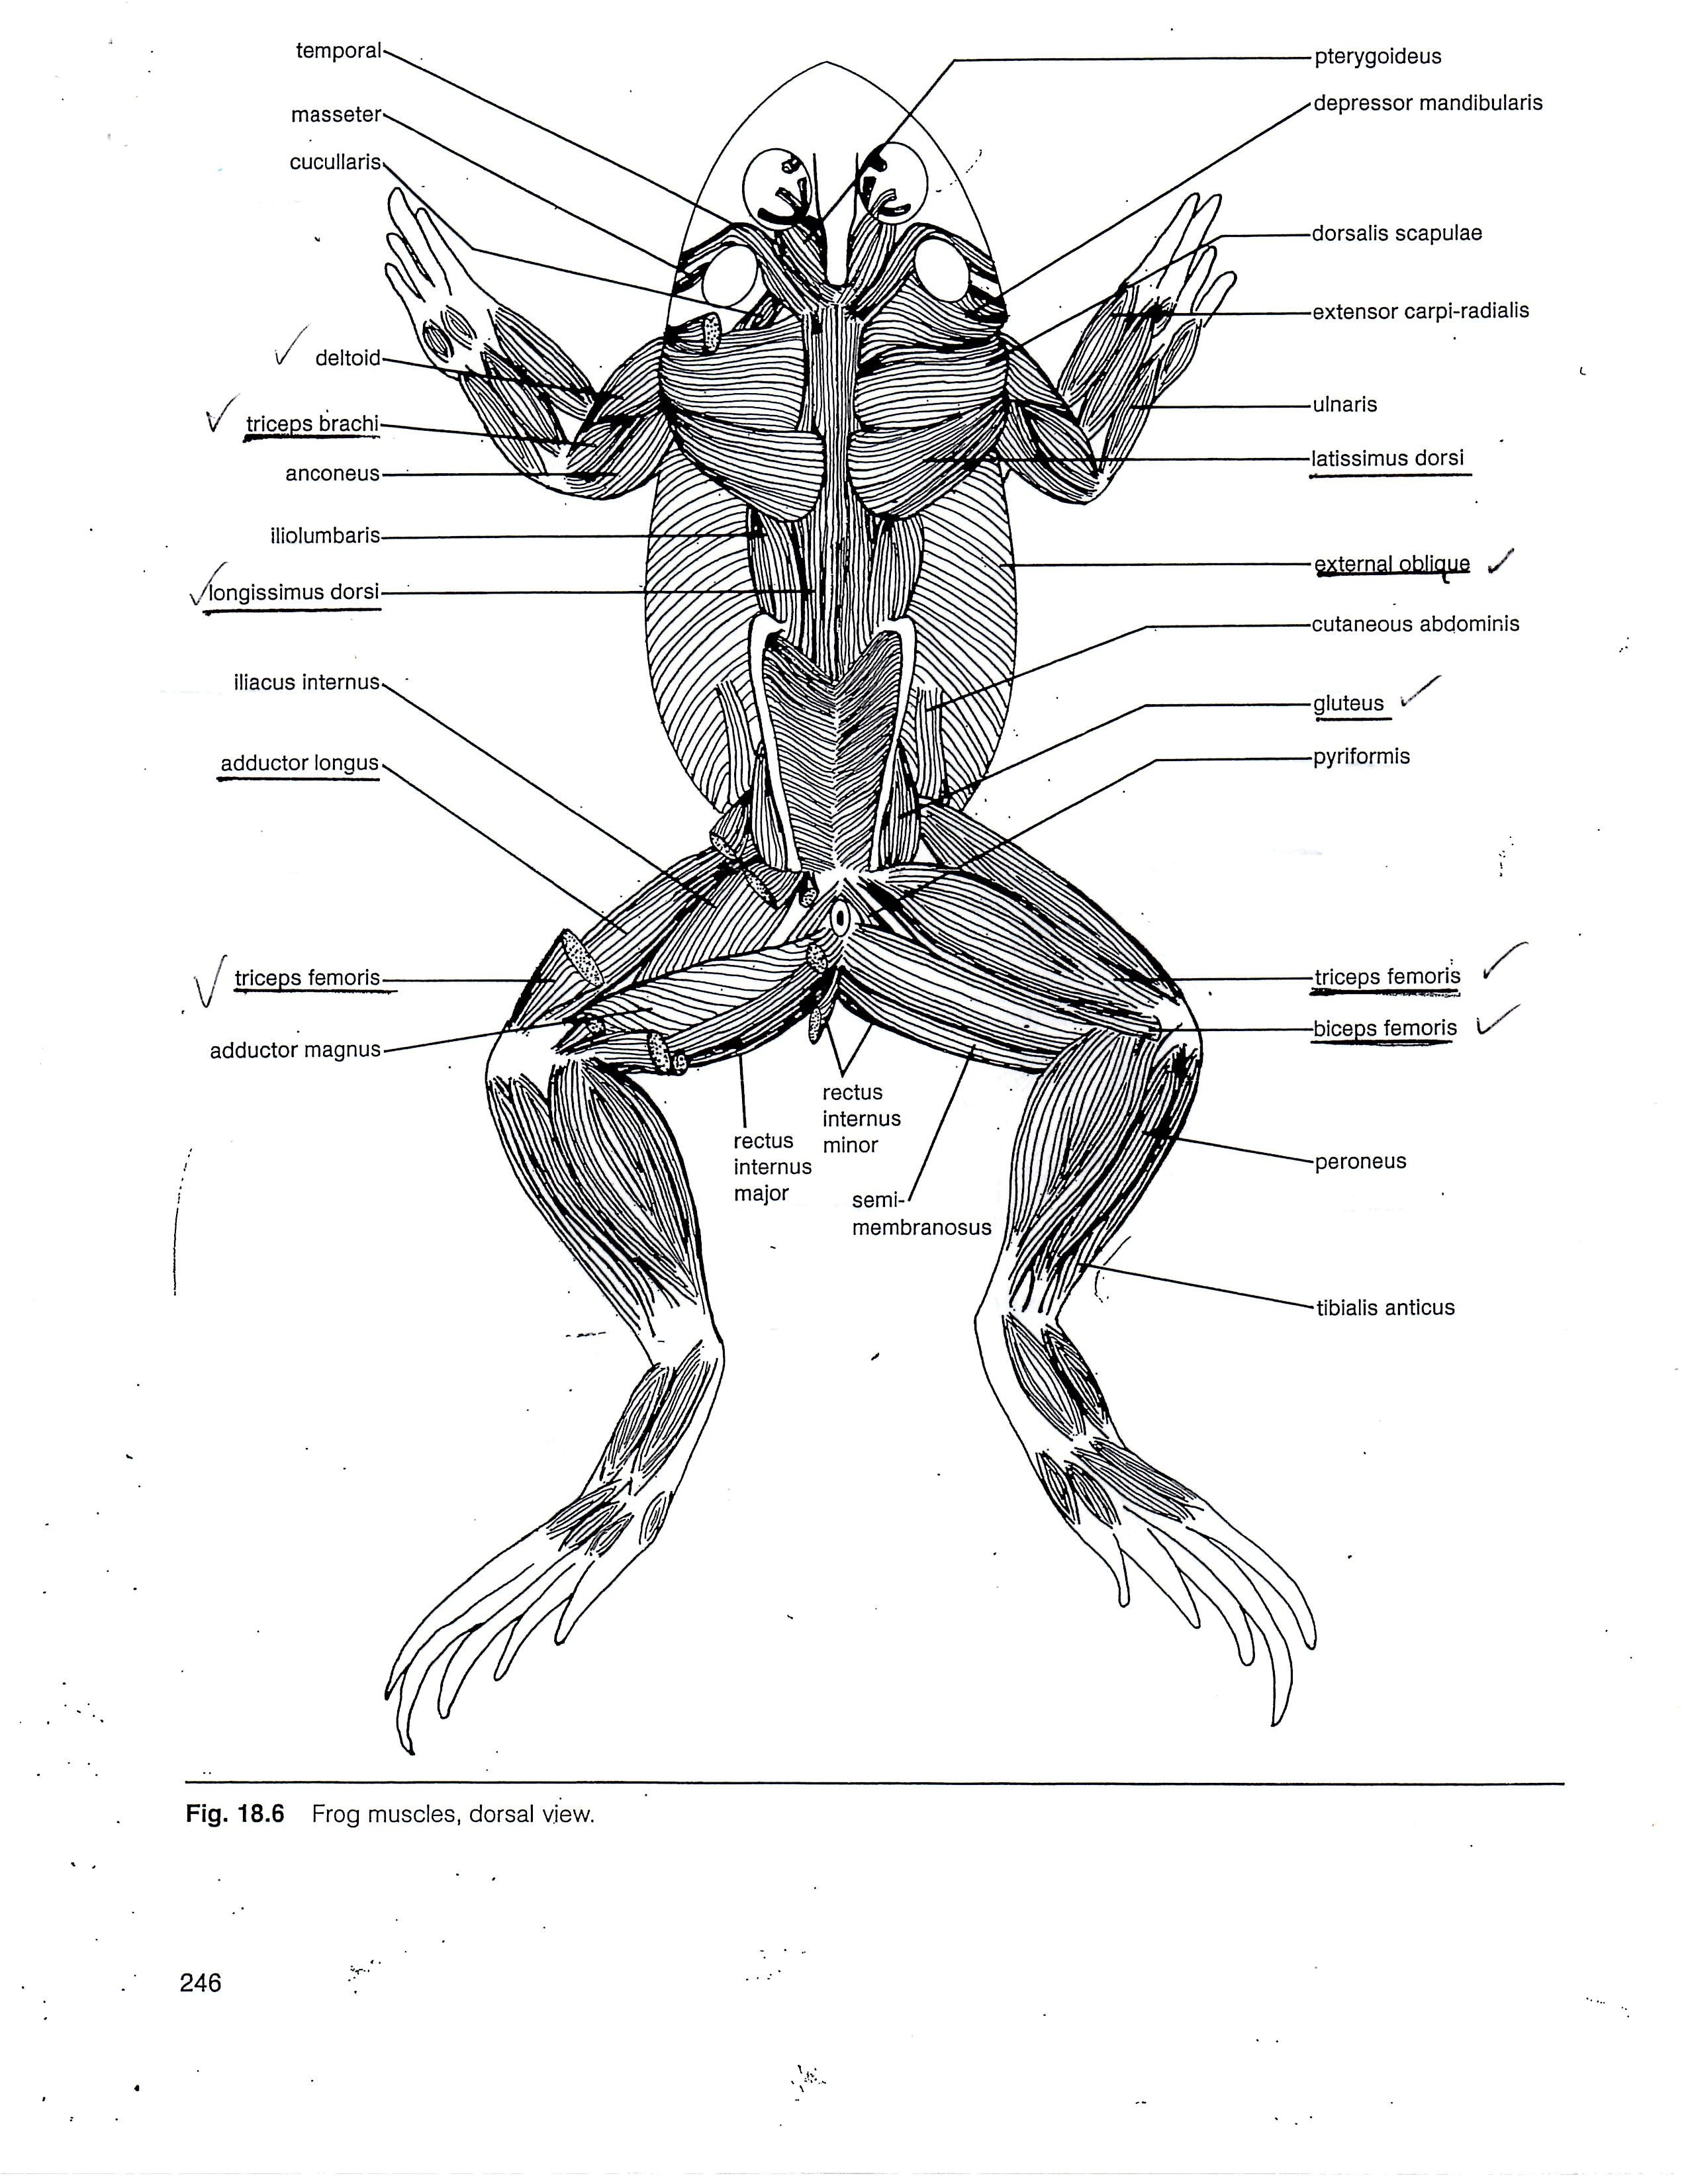 small resolution of frog muscle anatomy muscular system of the frog human anatomy diagram